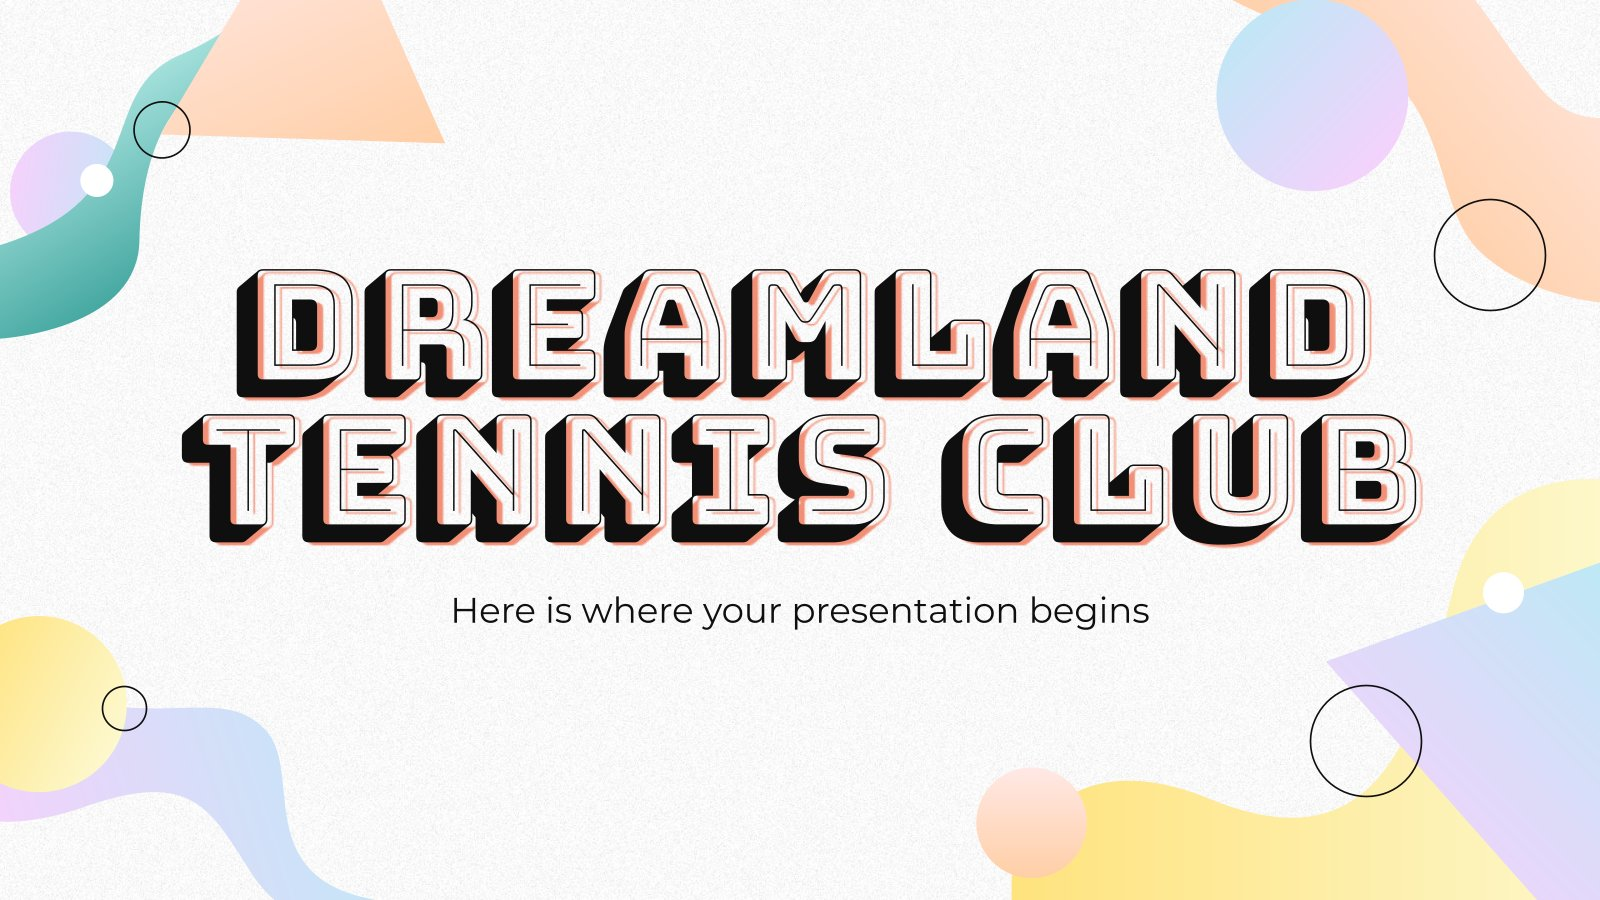 Dreamland Tennis Club presentation template